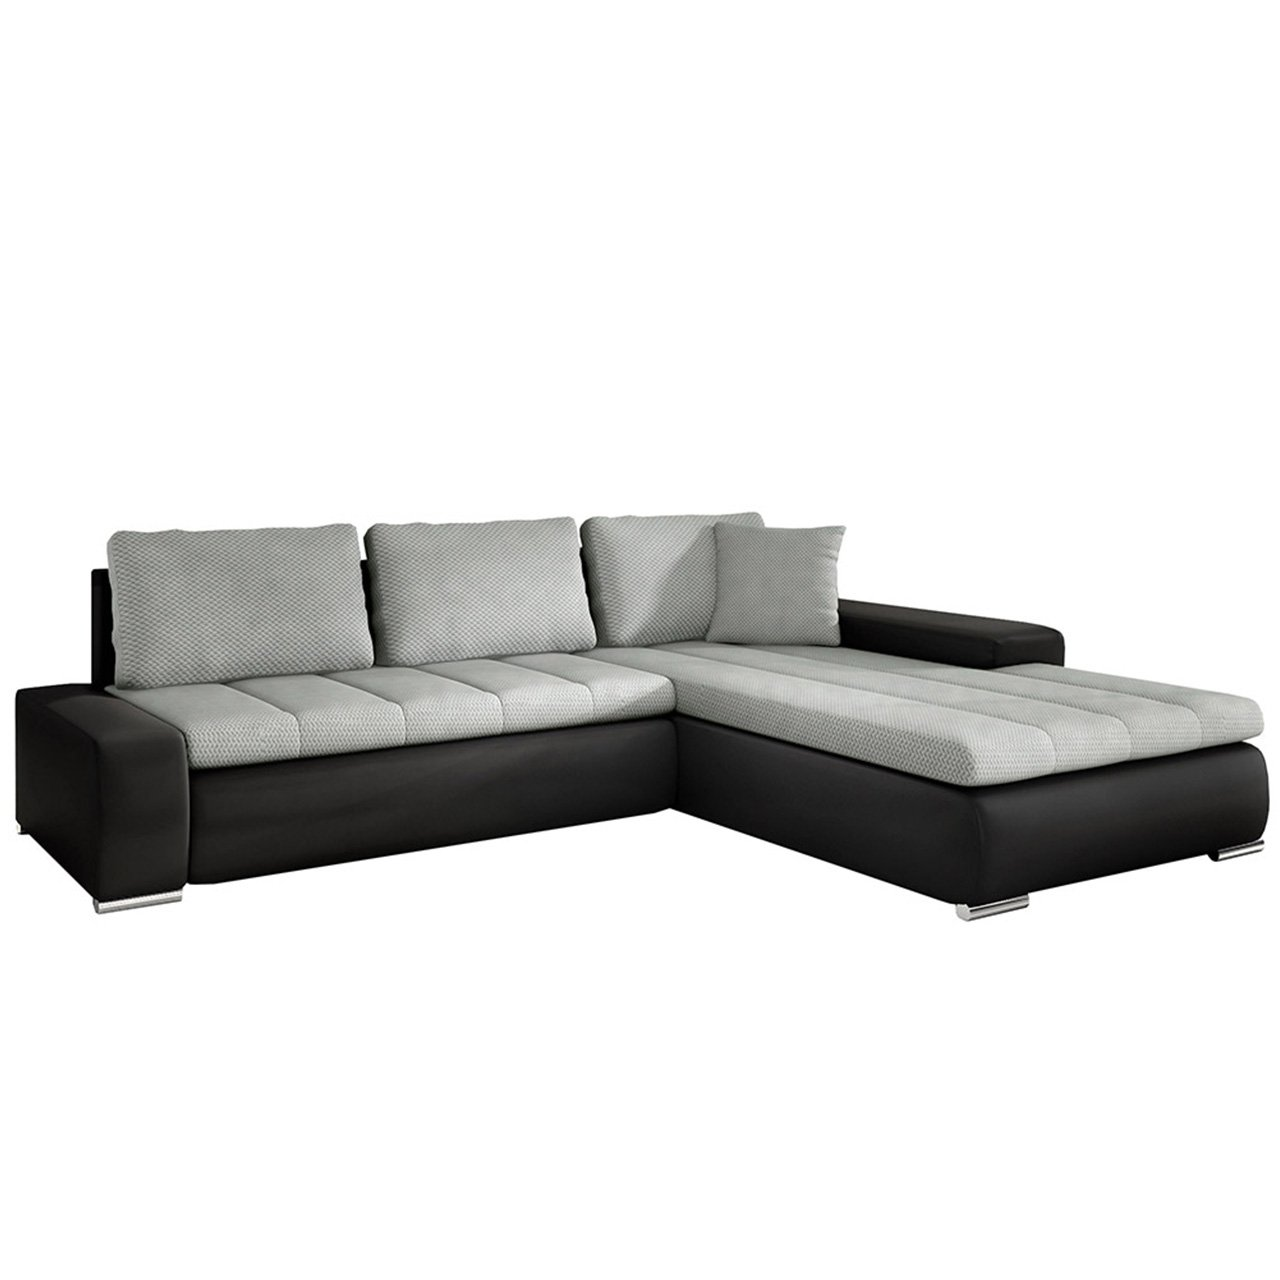 eckcouch ecksofa orkan smart elegante sofa mit. Black Bedroom Furniture Sets. Home Design Ideas